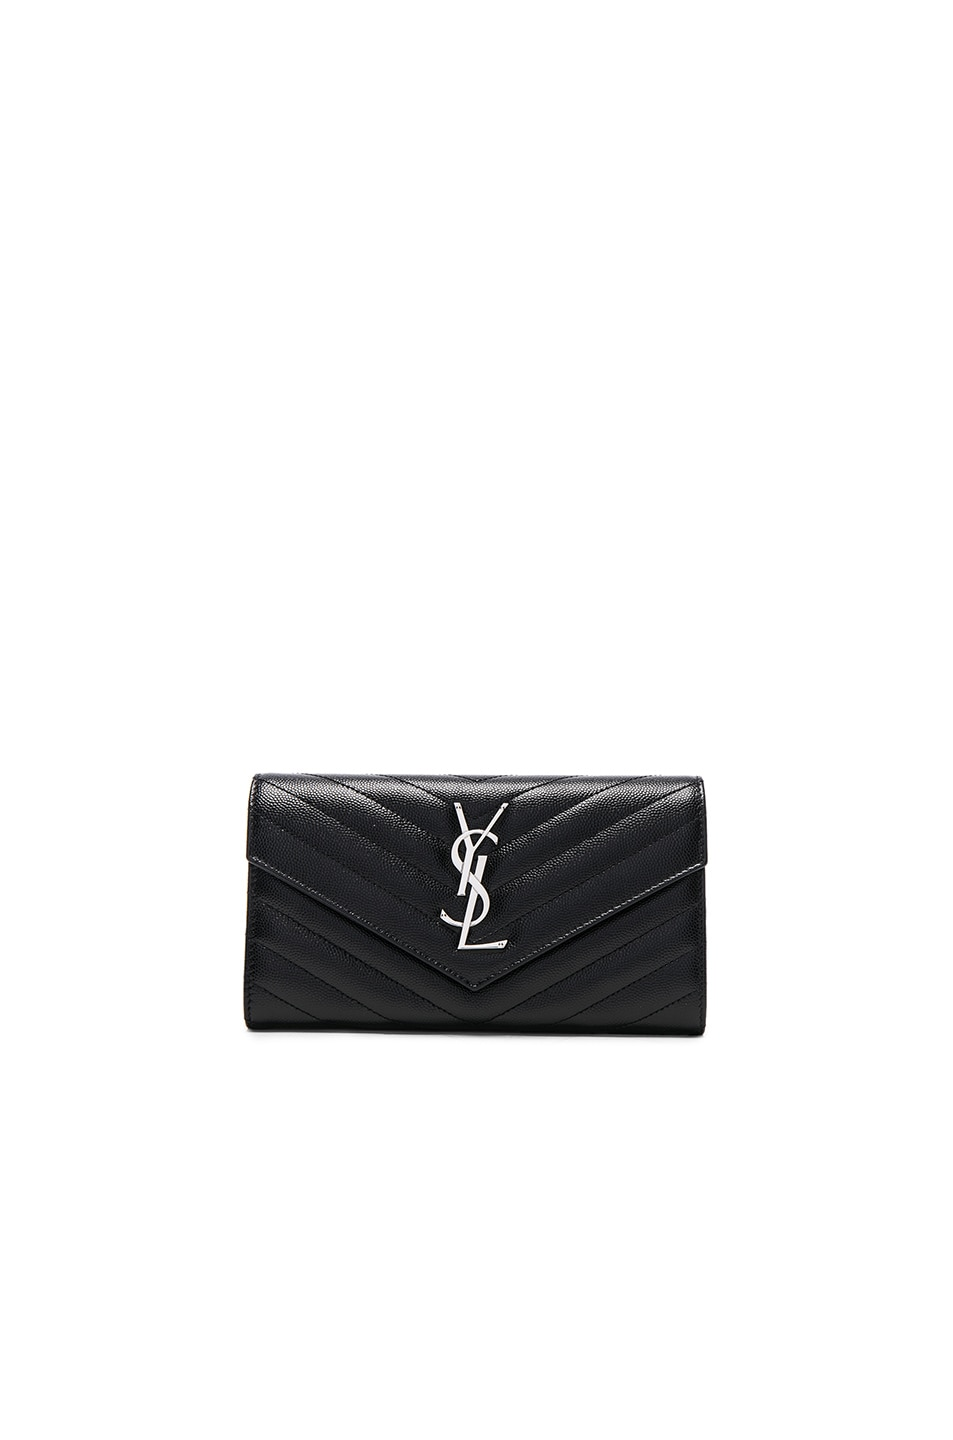 Image 1 of Saint Laurent Large Monogramme Flap Wallet in Black